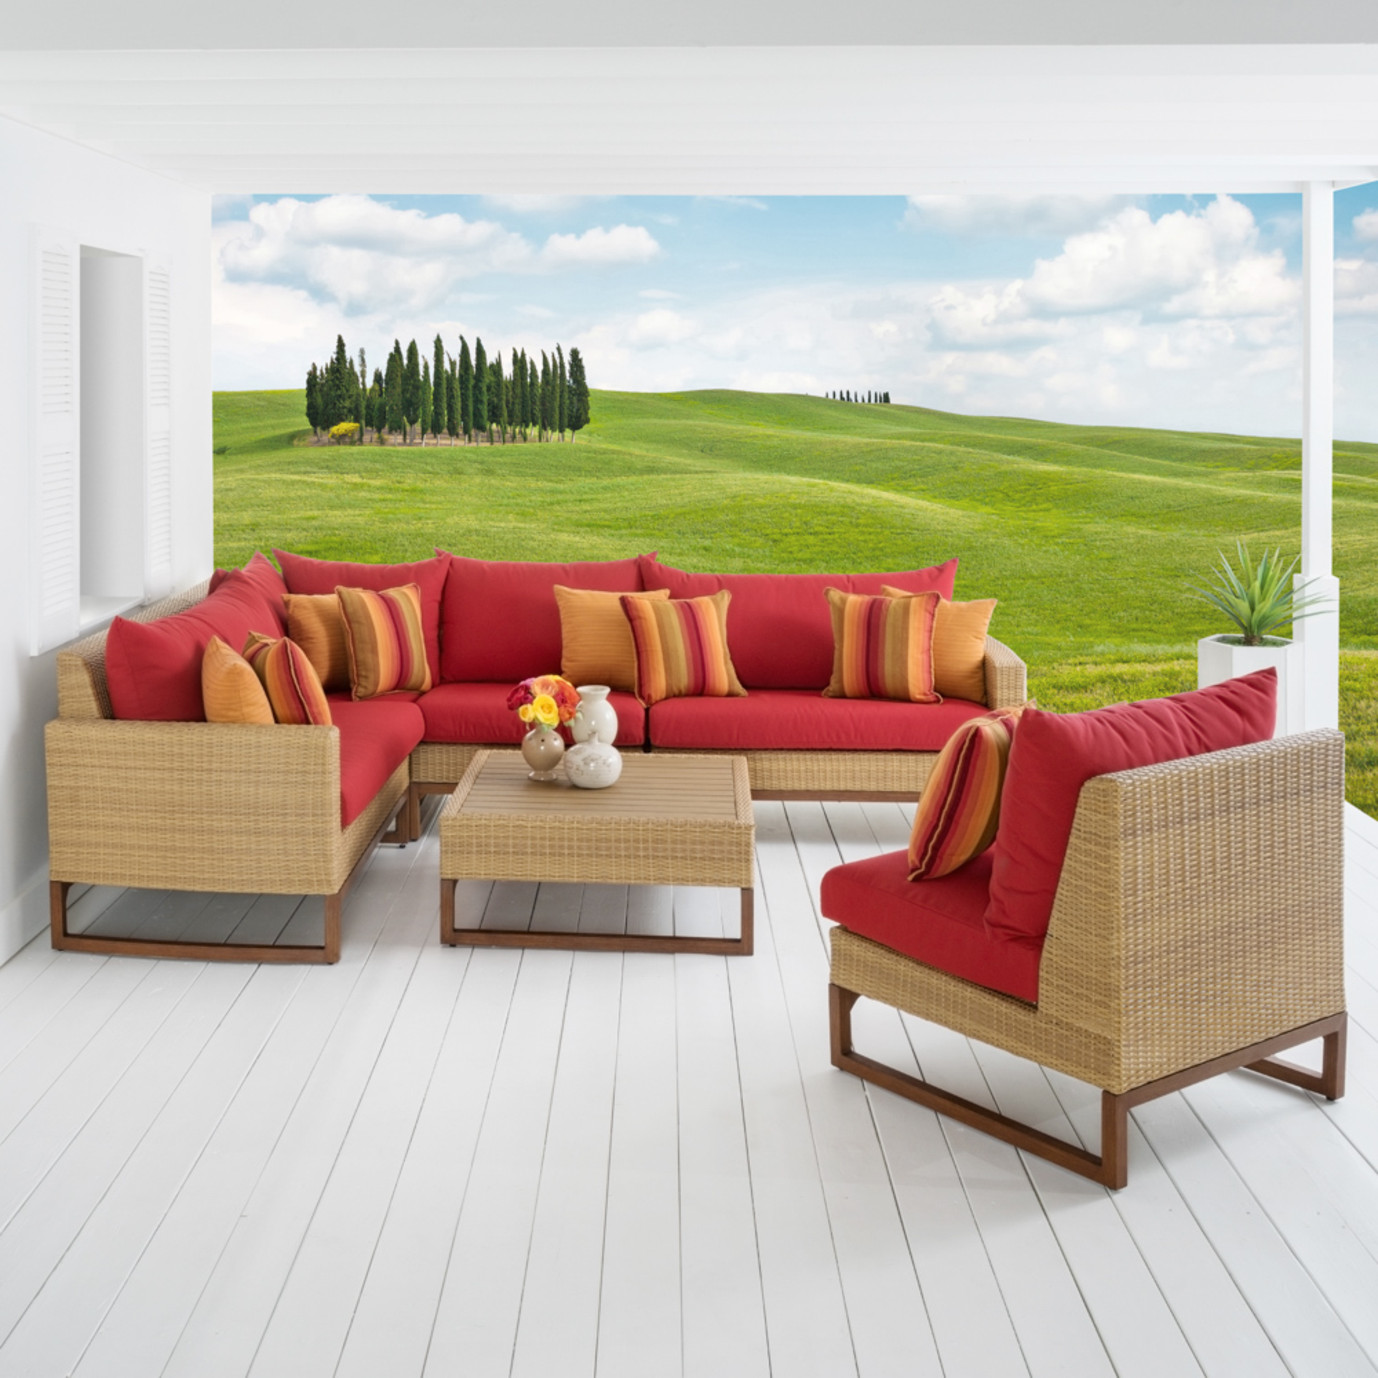 Mili™ 6 Piece Sofa Sectional - Sunset Red